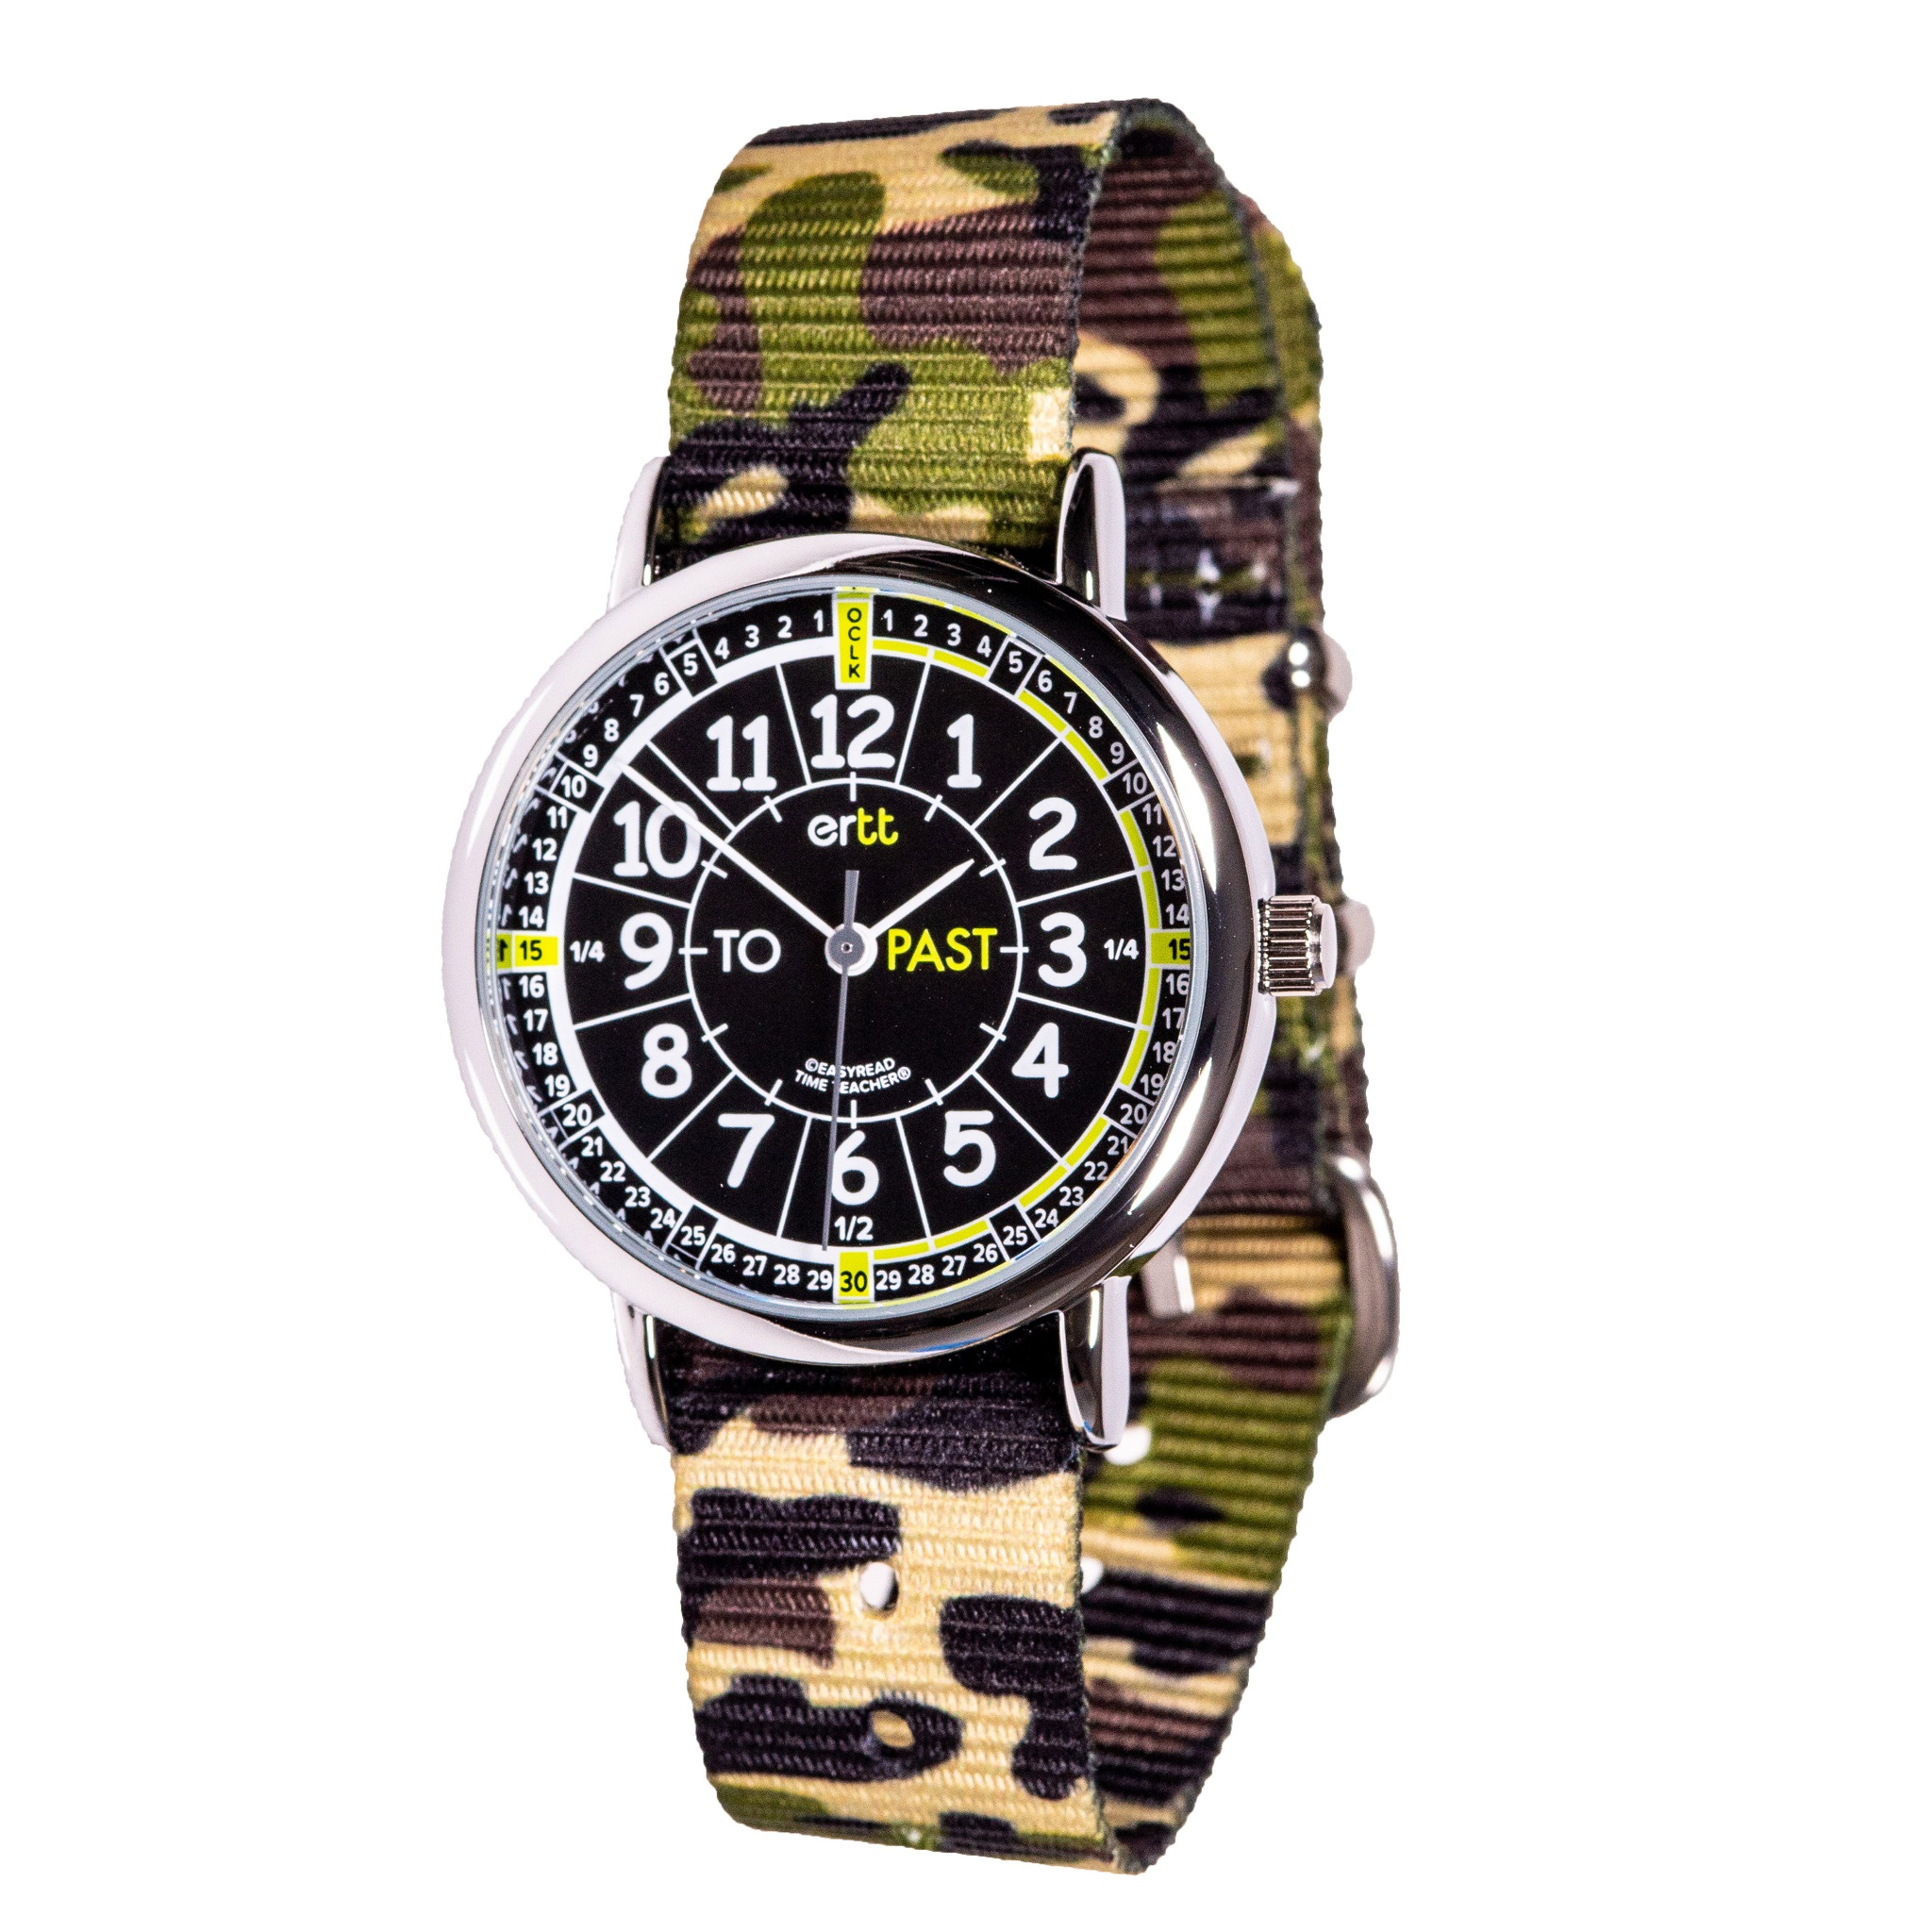 EasyRead Time Teacher Past/To Camo Watch